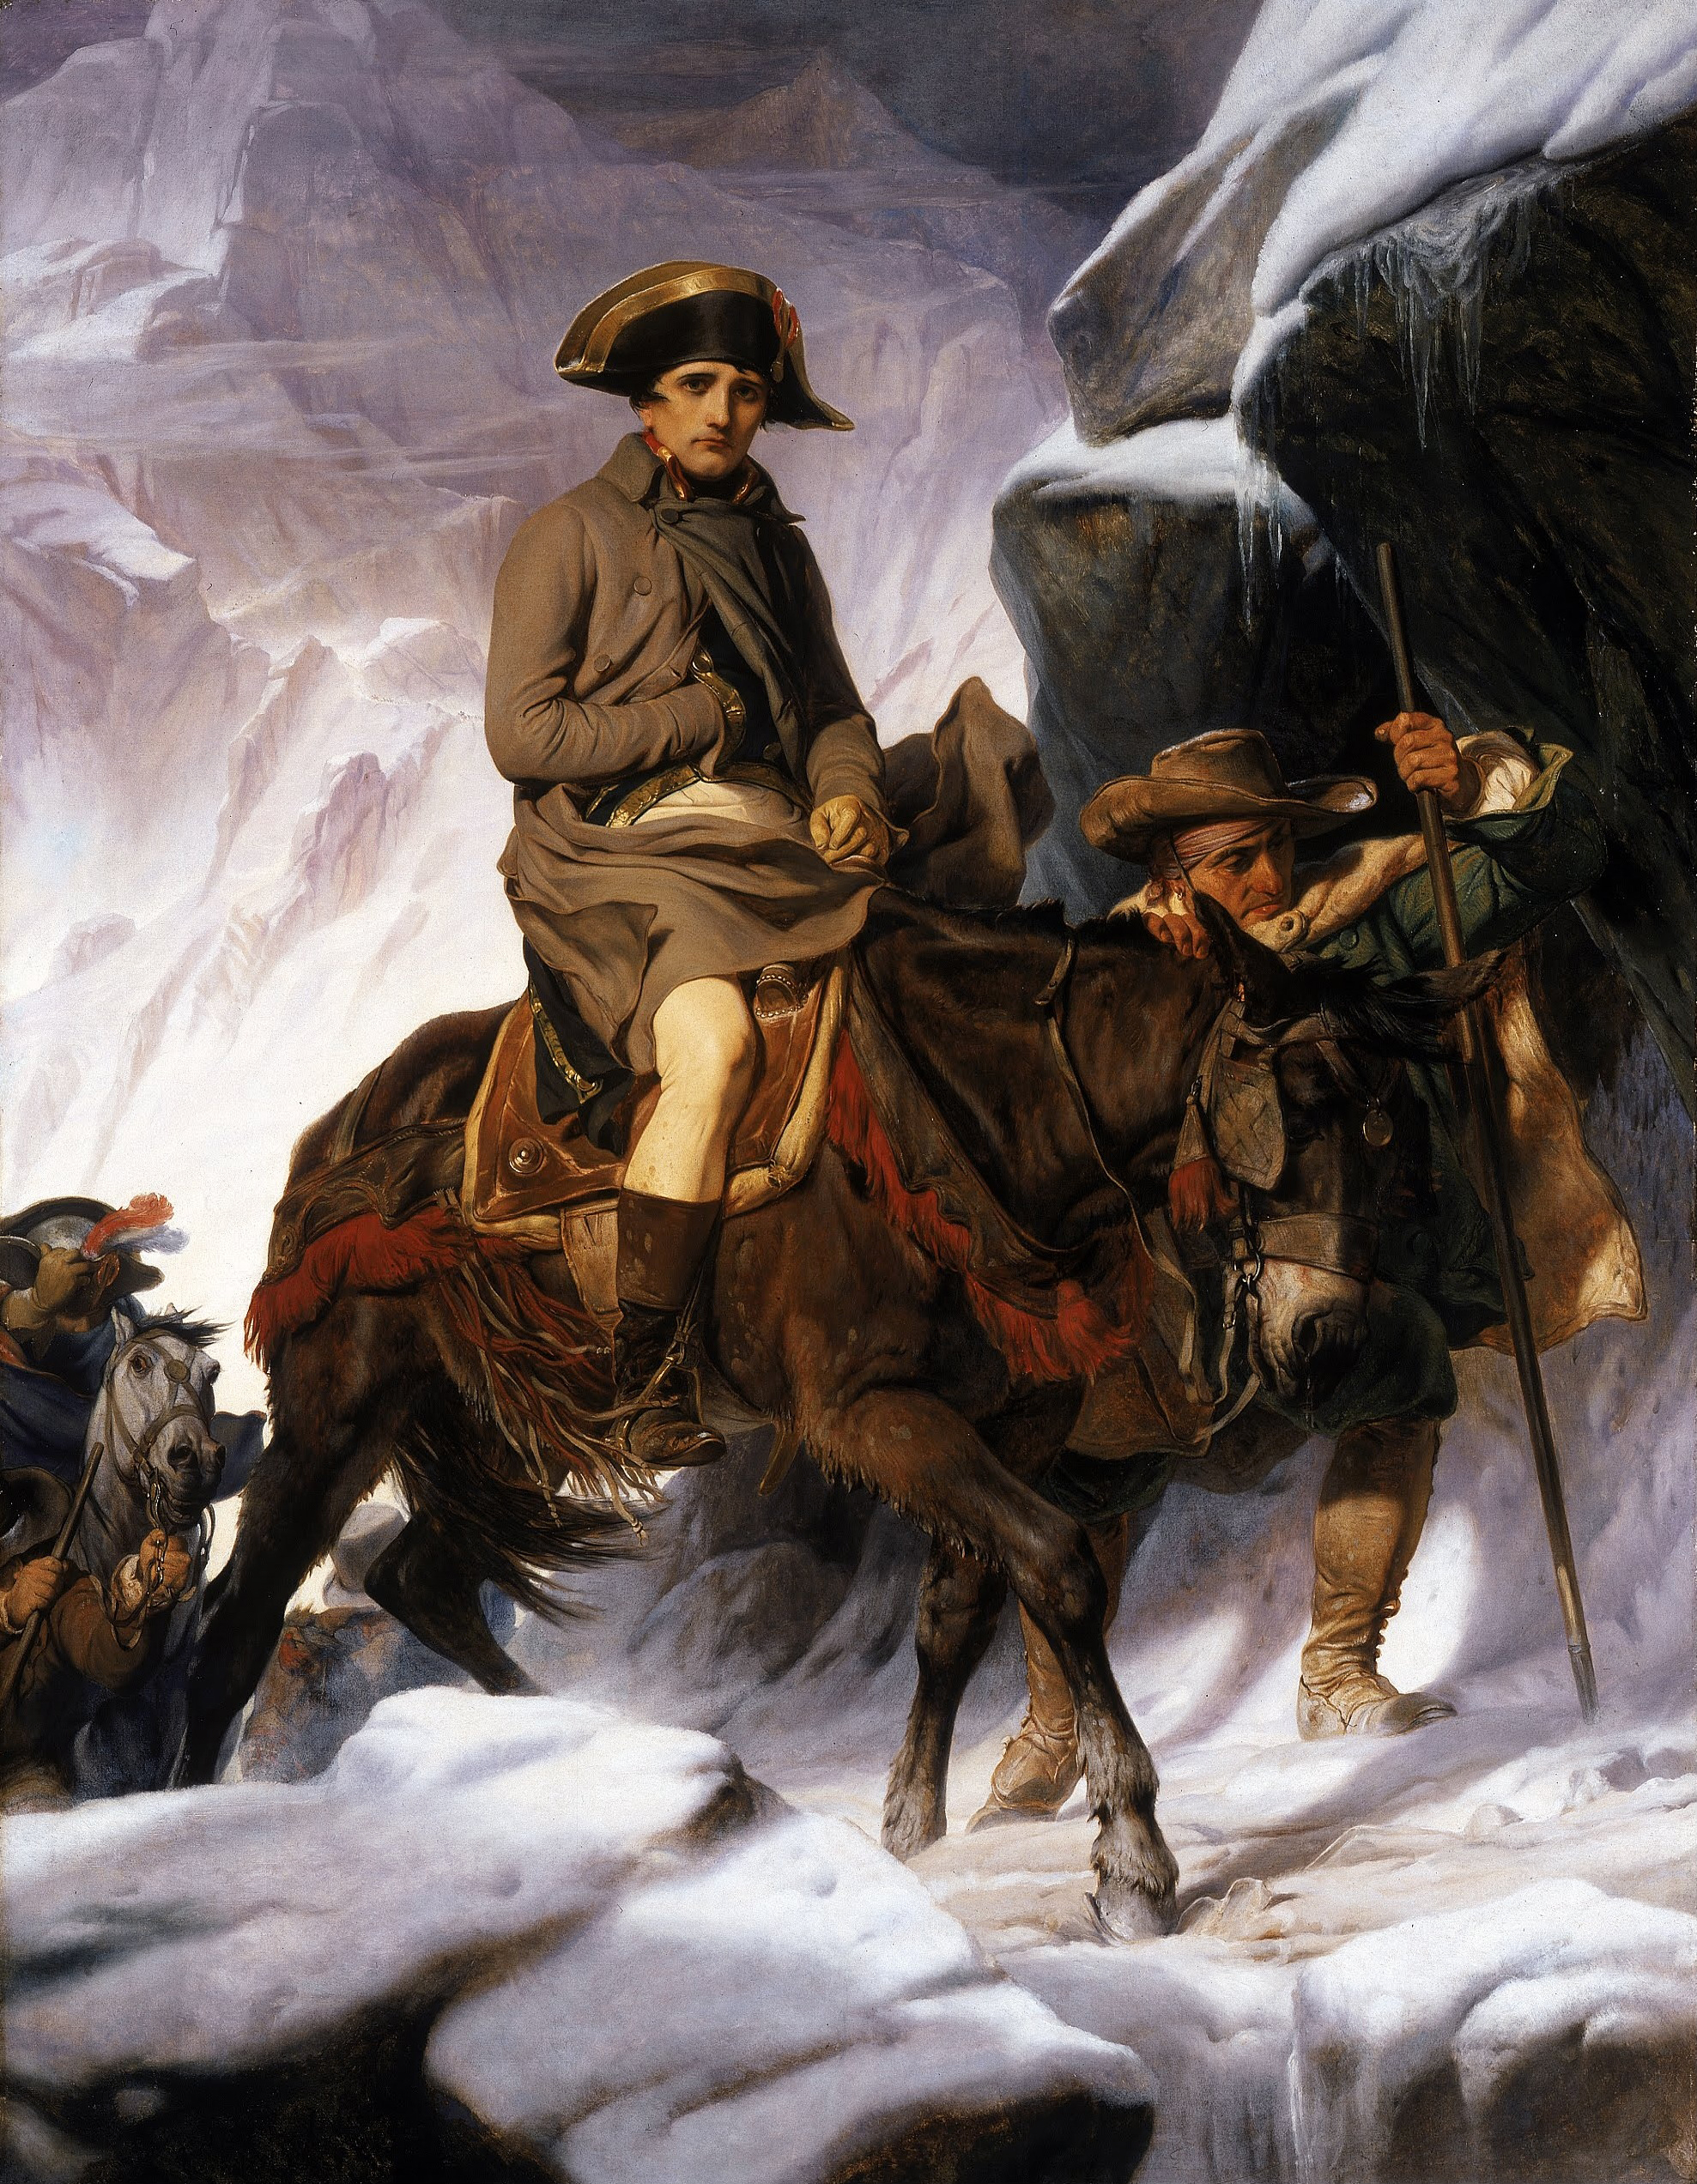 Bonaparte Crossing the Alps, realist version by Paul Delaroche in 1848